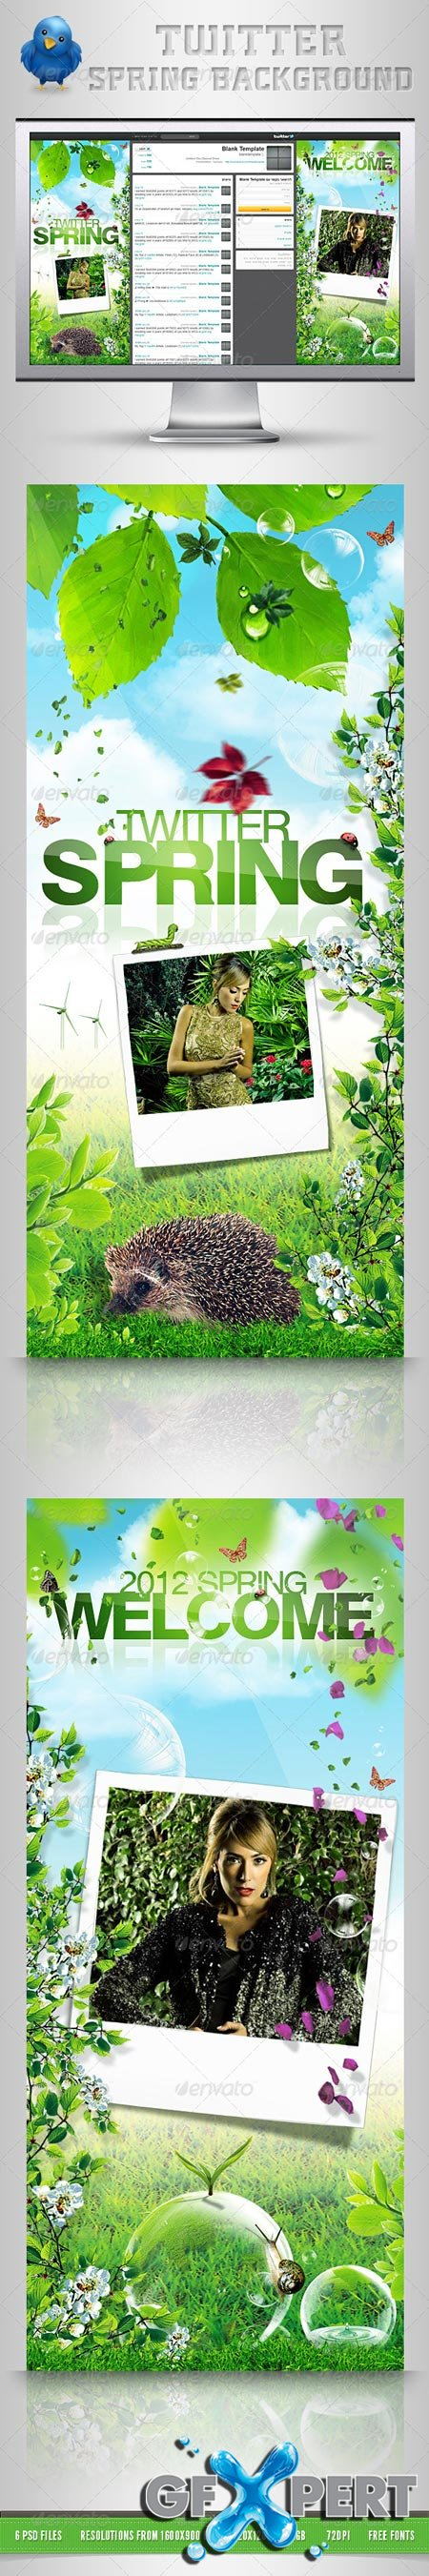 GraphicRiver Twitter Background Spring 1934819